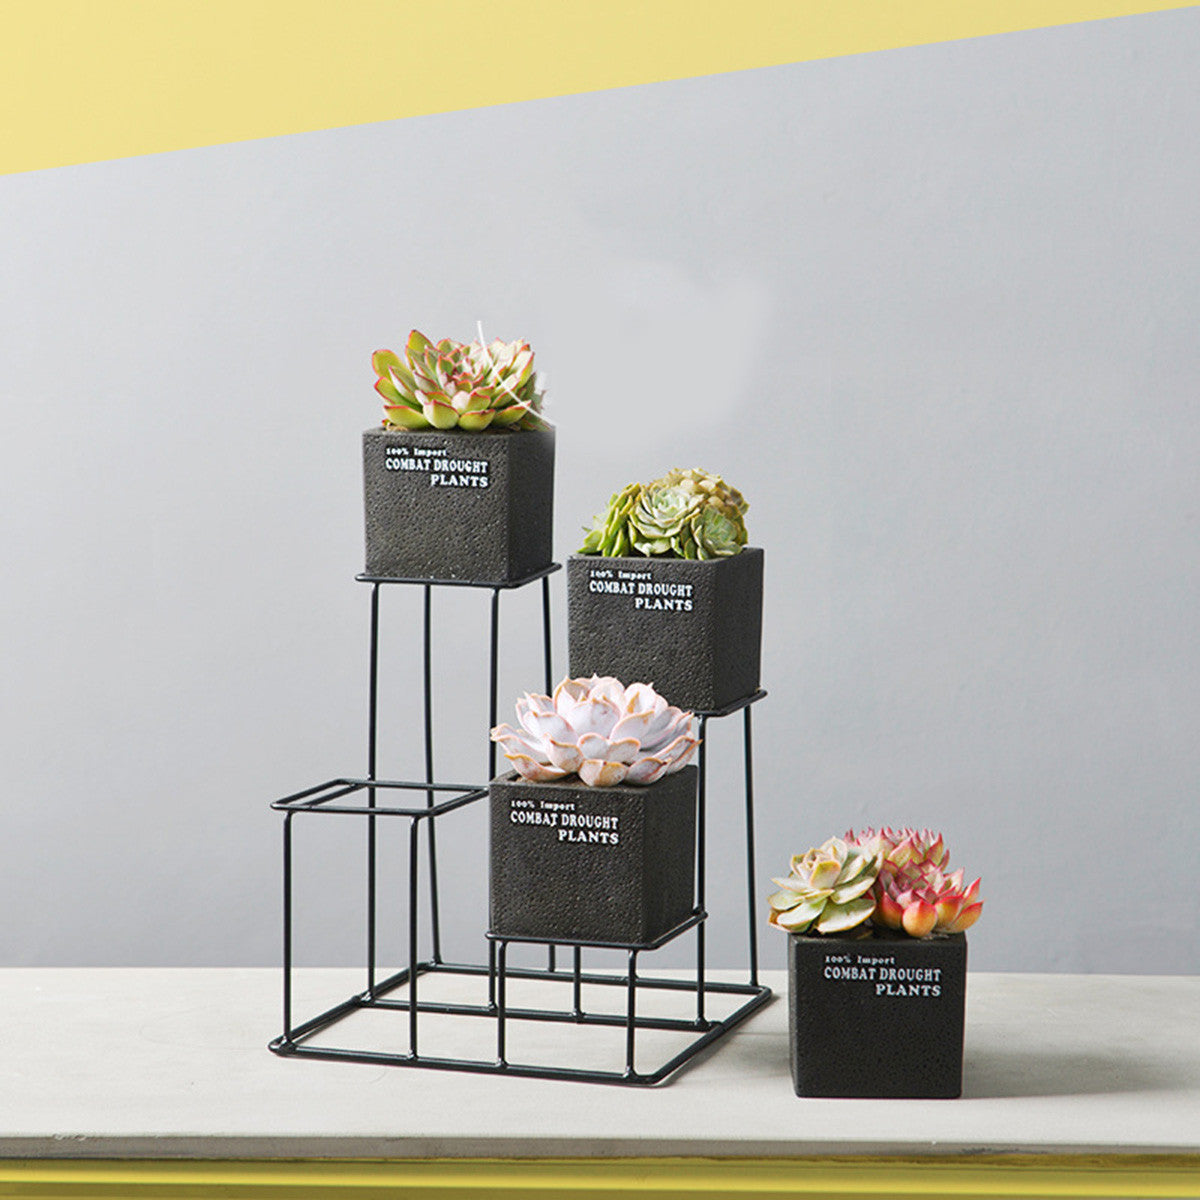 4pcs Cement Succulent Planter Pots Square Flower Pot Flower Planter with One Iron Metal Shelf